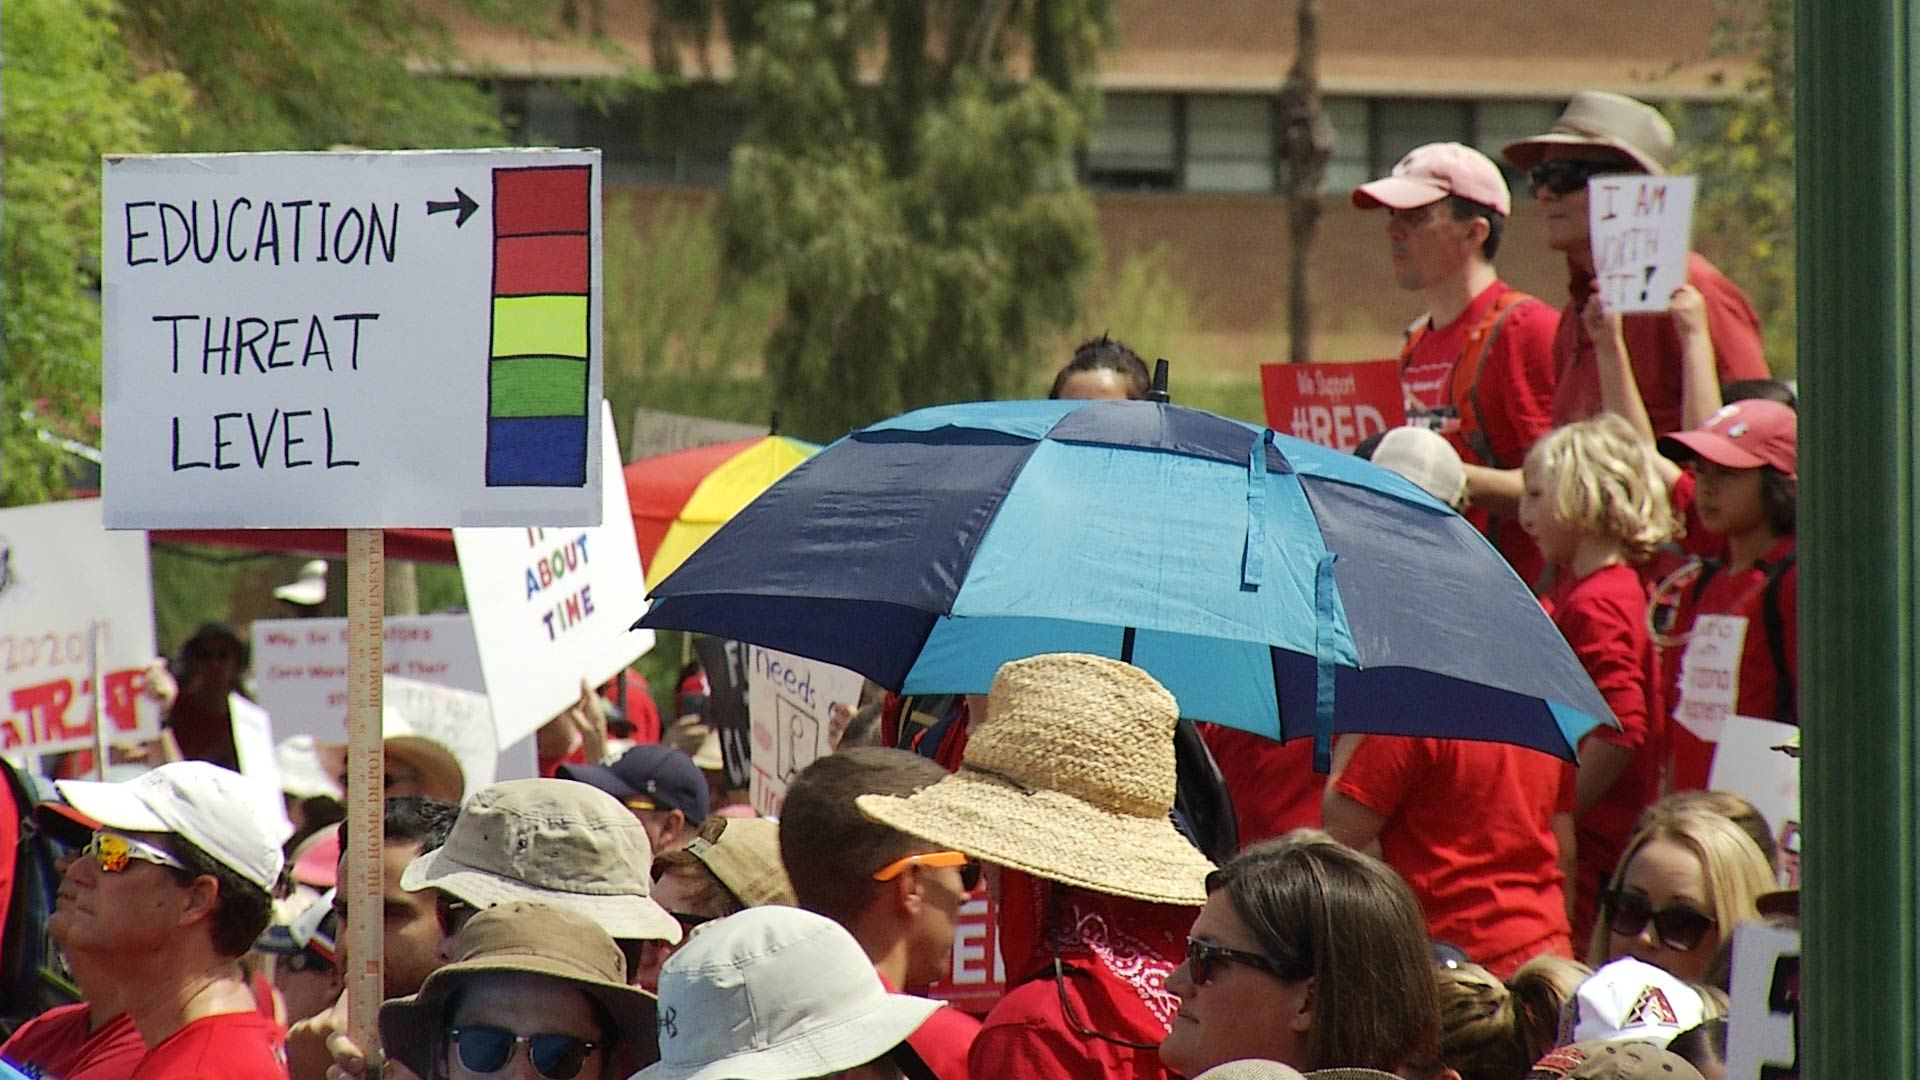 #RedForEd protesters at the Arizona Capitol, Monday, April 30, 2018.